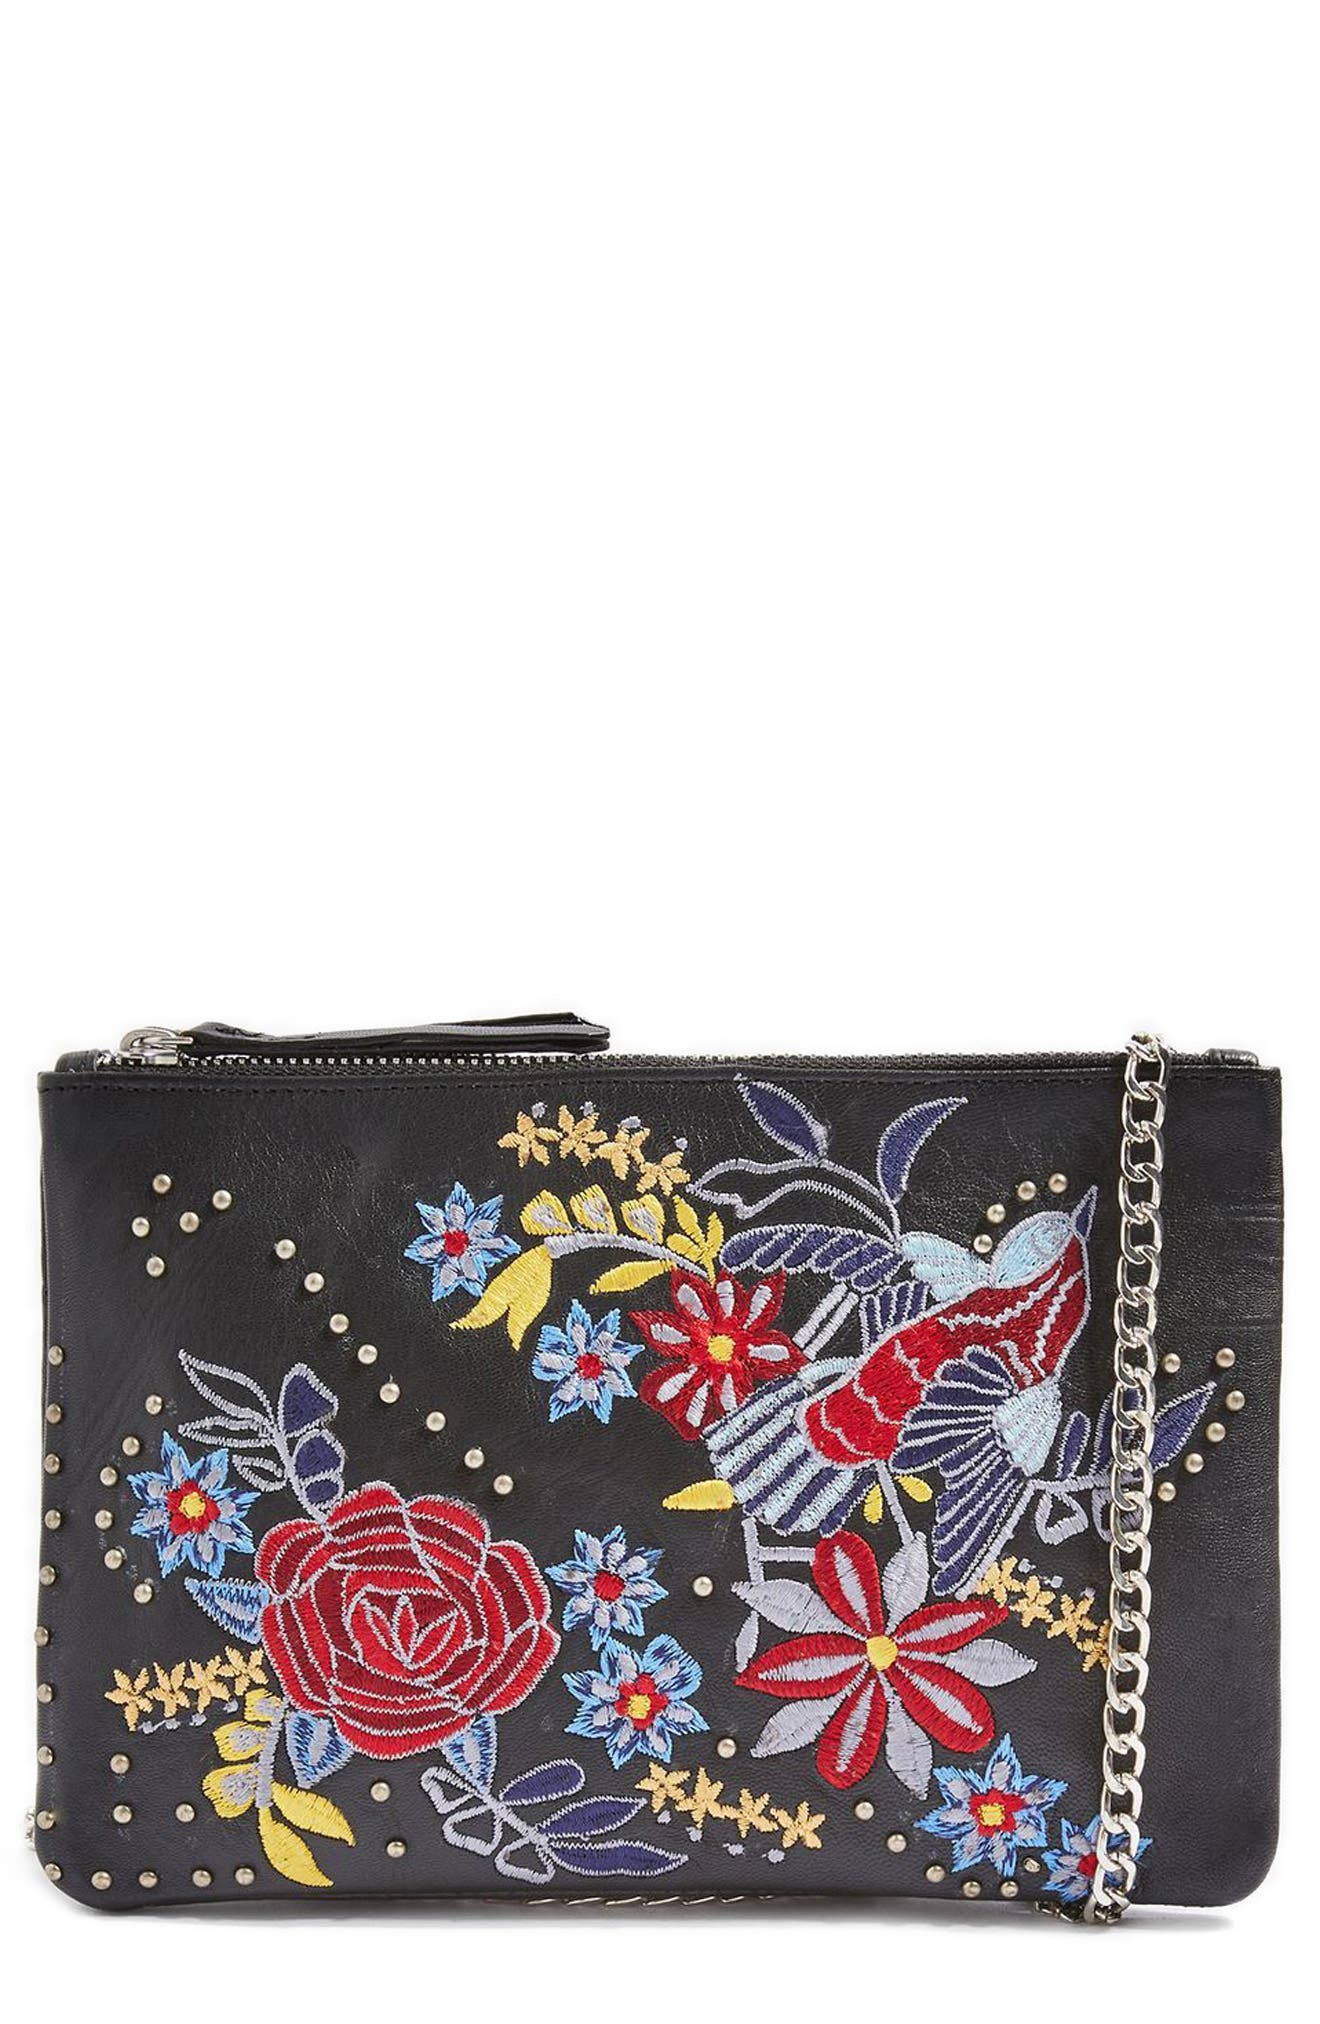 Topshop Ester Embroidered Leather Shoulder Bag